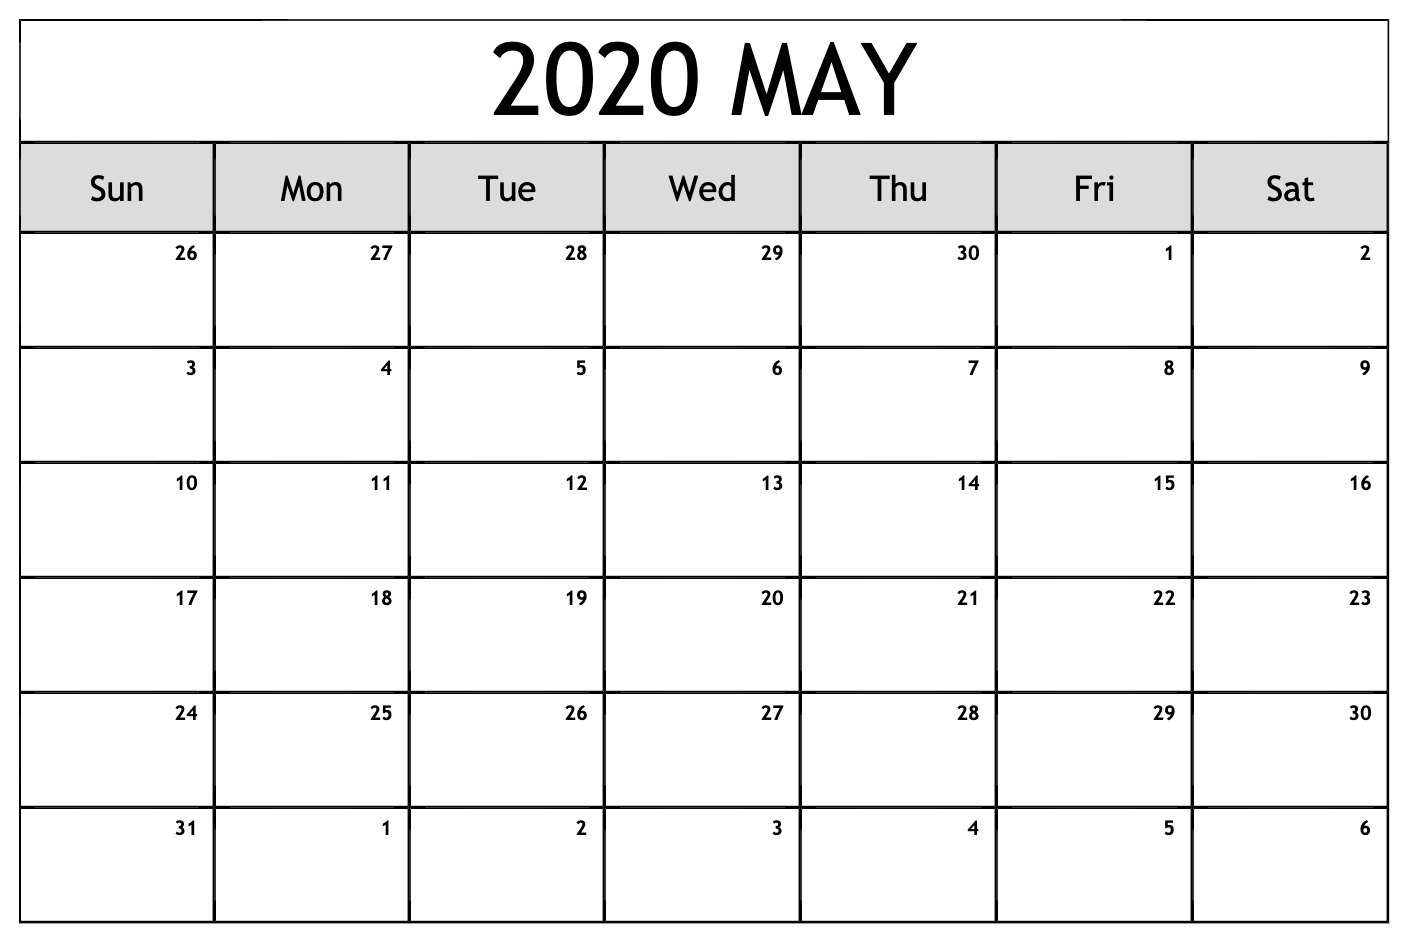 May 2020 Blank Calendar with Holidays